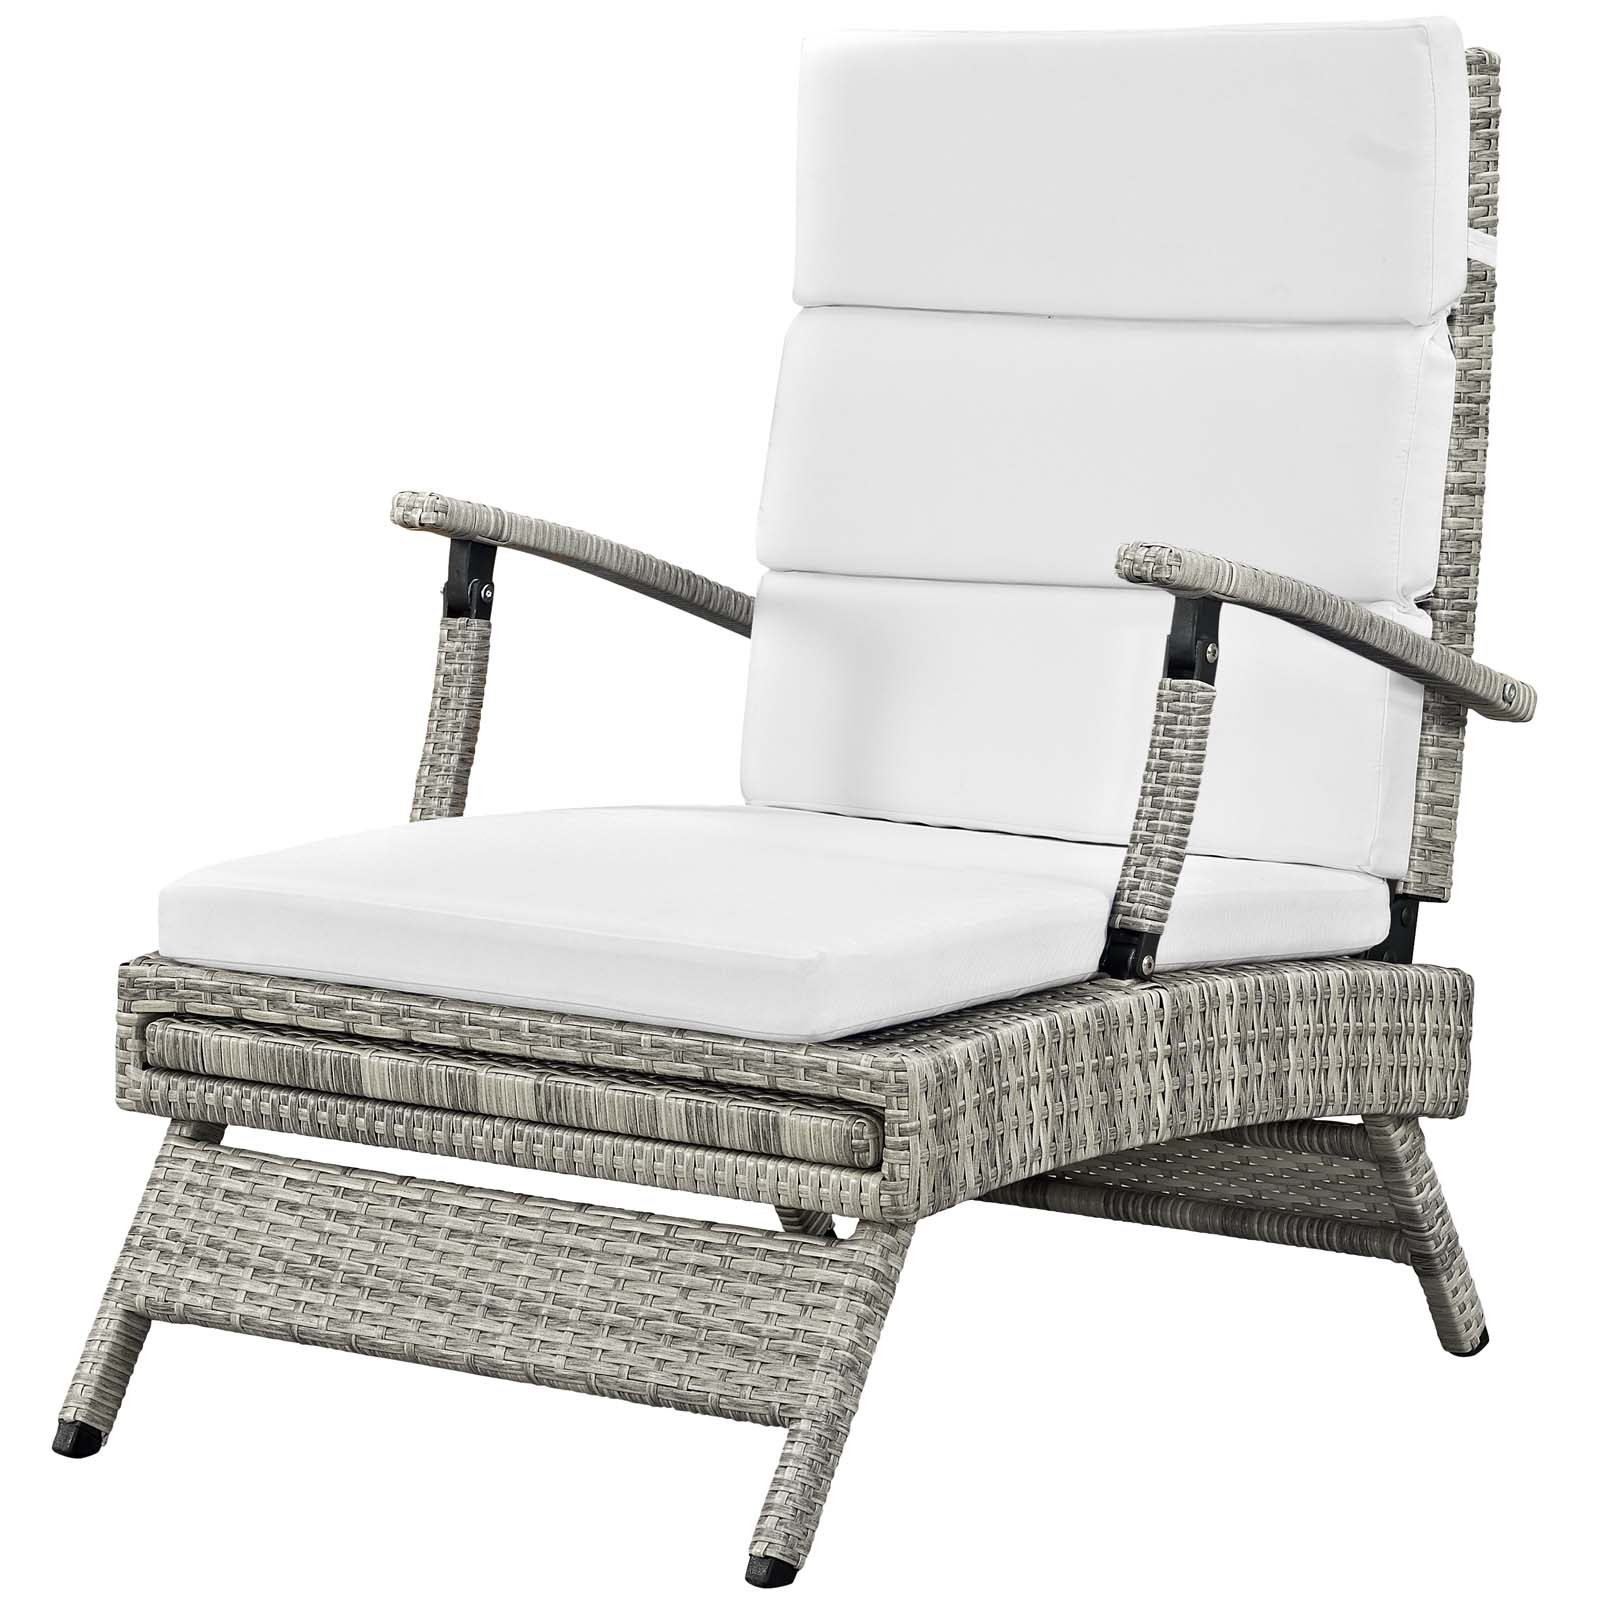 Best And Newest Envisage Chaise Outdoor Patio Wicker Rattan Lounge Chairs Within Envisage Chaise Outdoor Patio Wicker Rattan Lounge Chair (View 5 of 25)